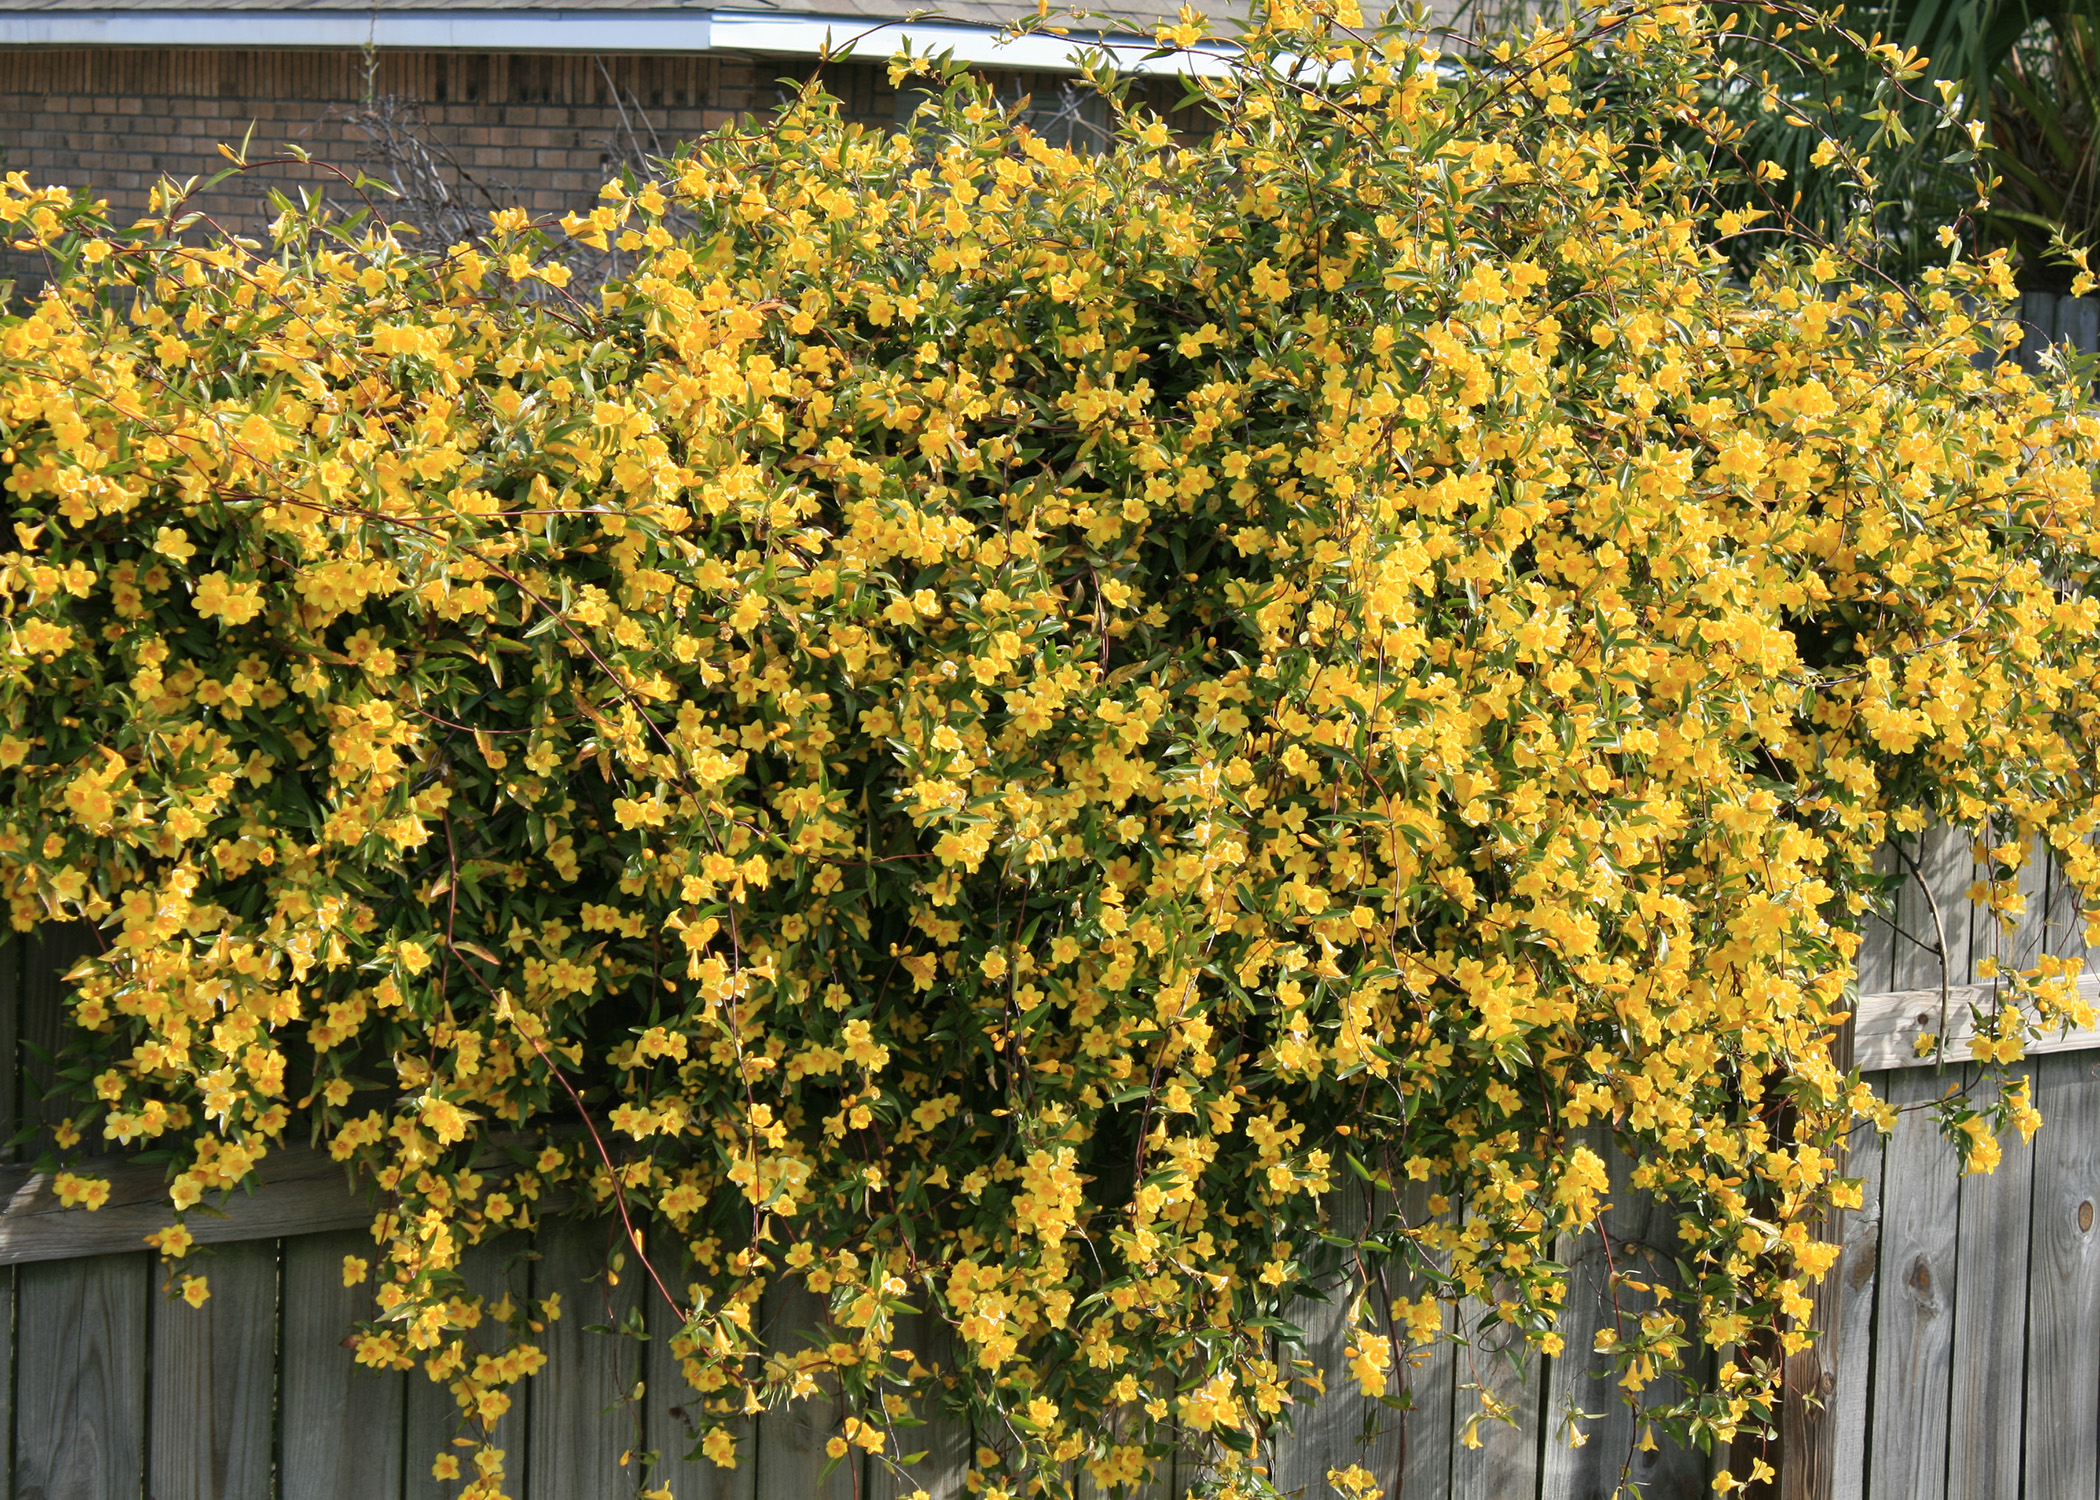 Plant flowering vines now for great show next spring mississippi native yellow jasmine or yellow jessamine adds one of the first touches of color mightylinksfo